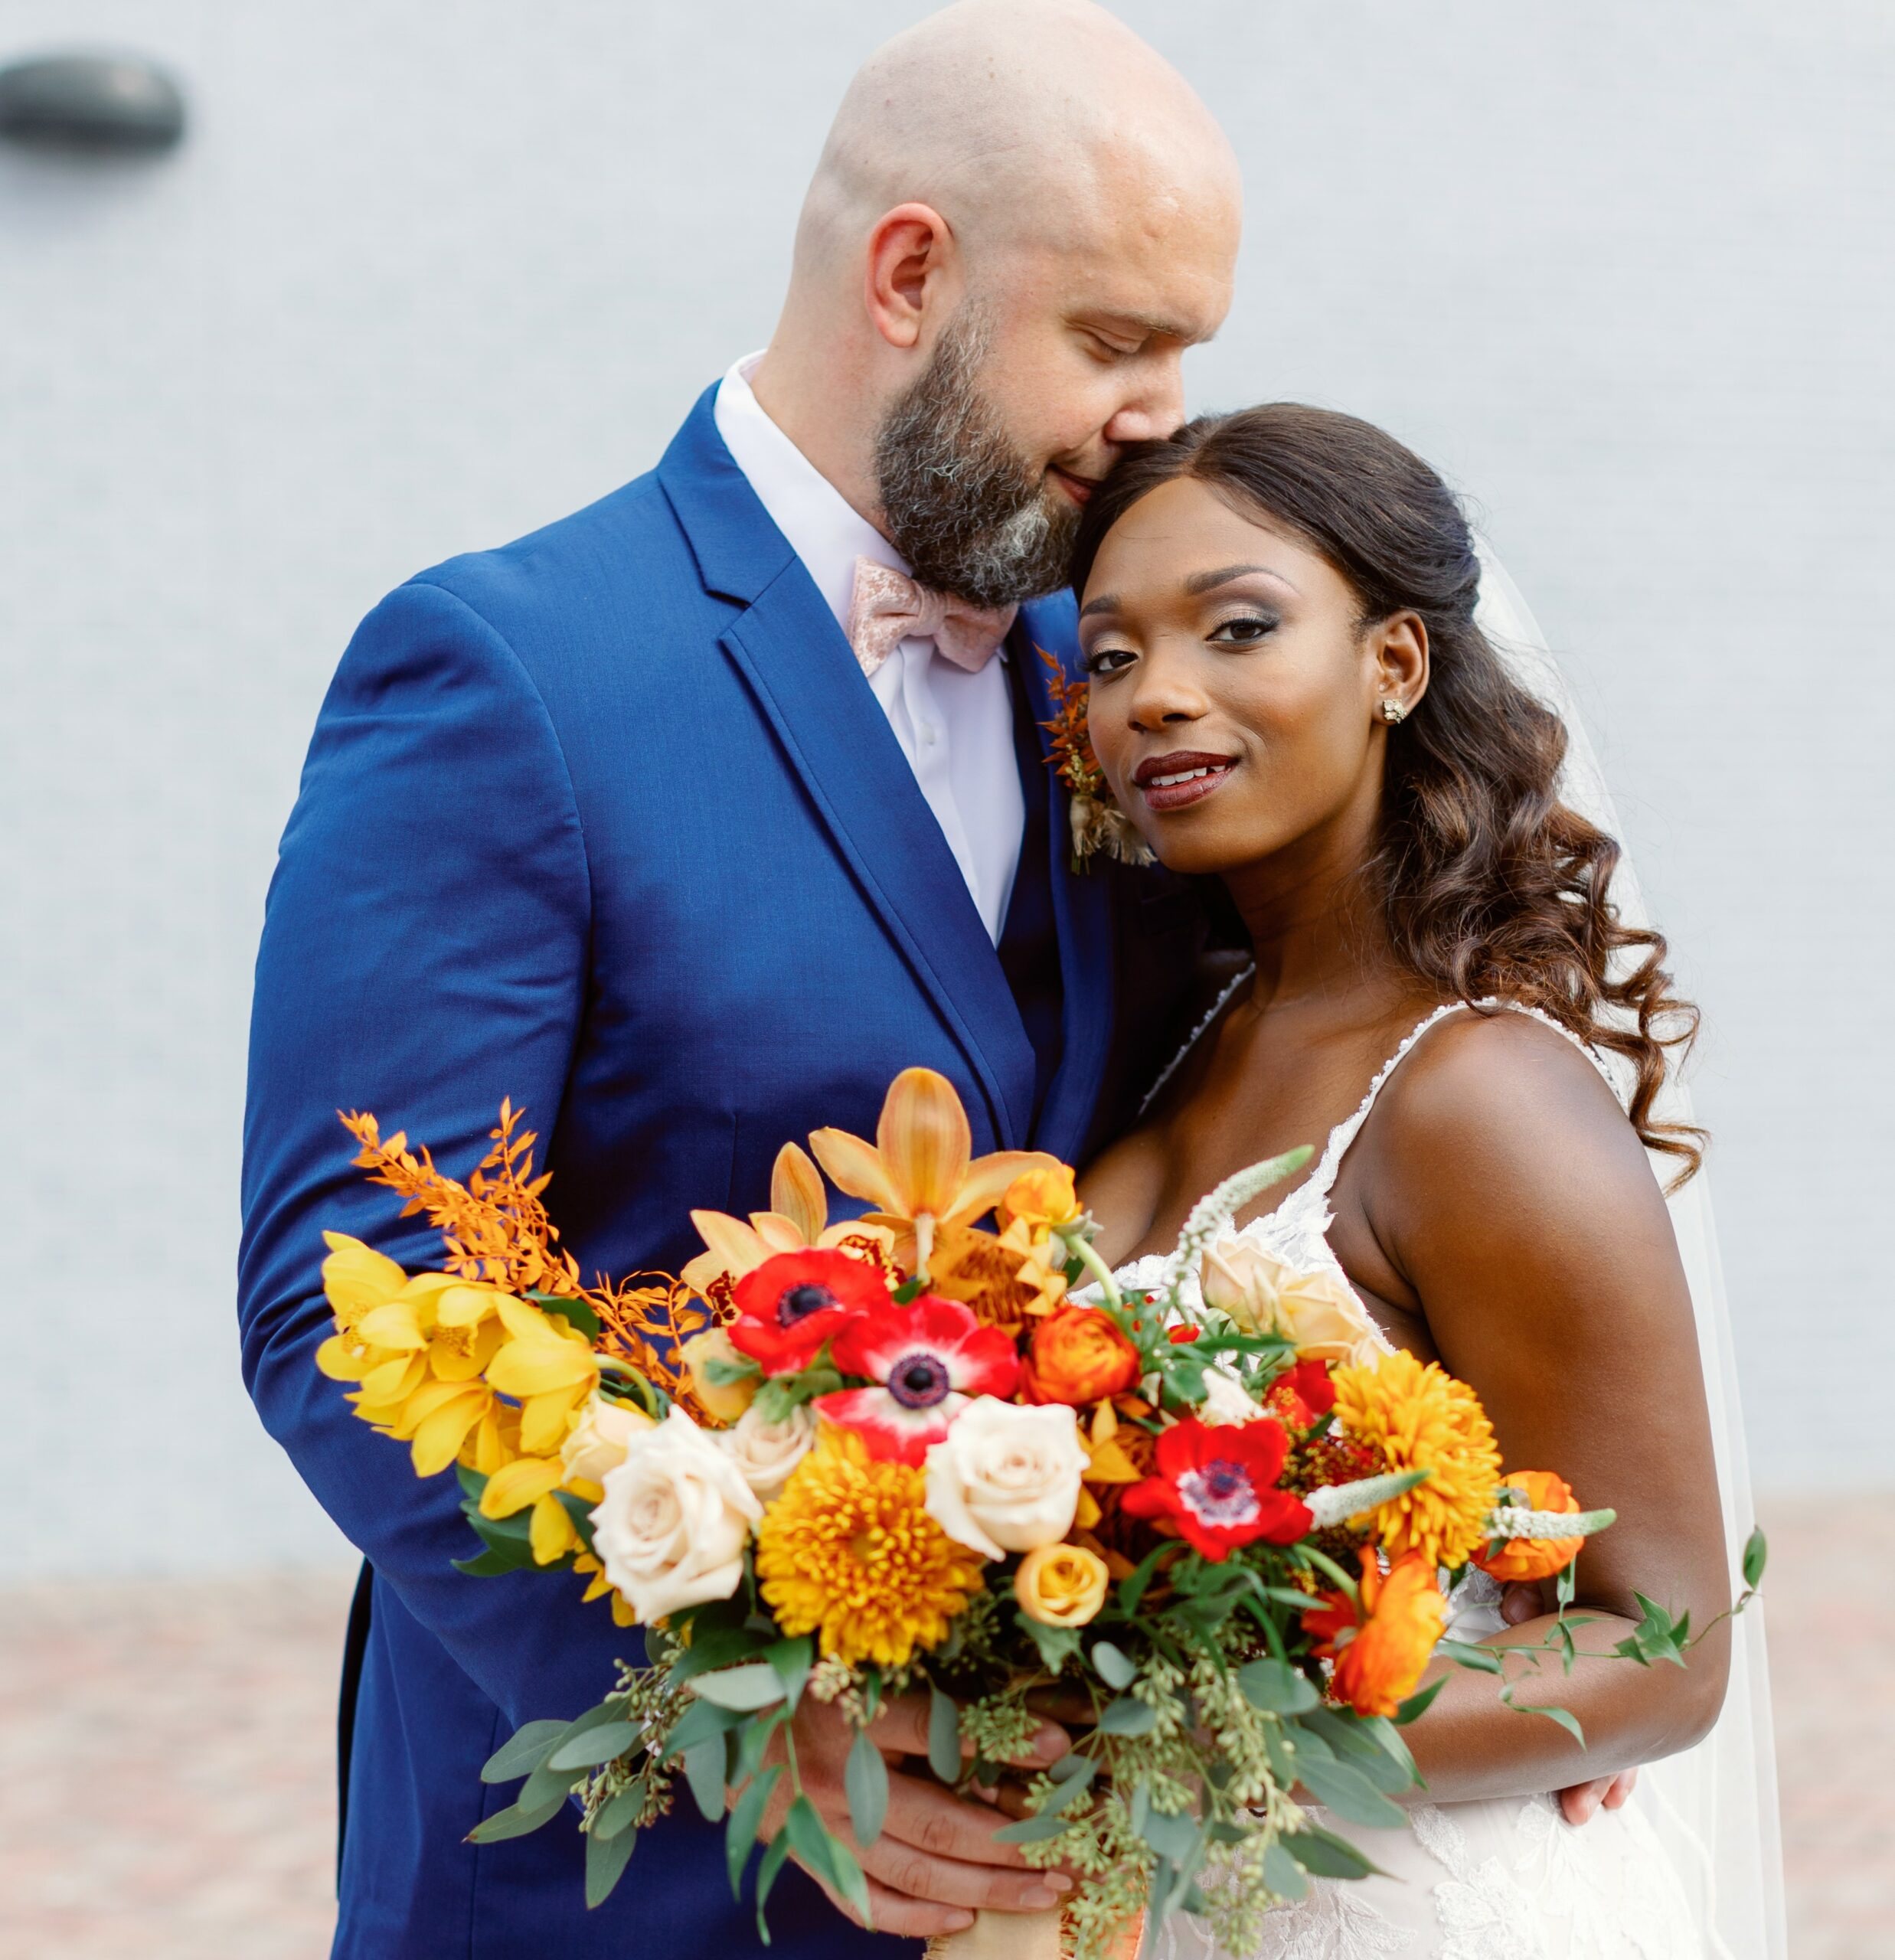 black bride in white dress holding colorful bouquet while standing next to white groom in blue suit